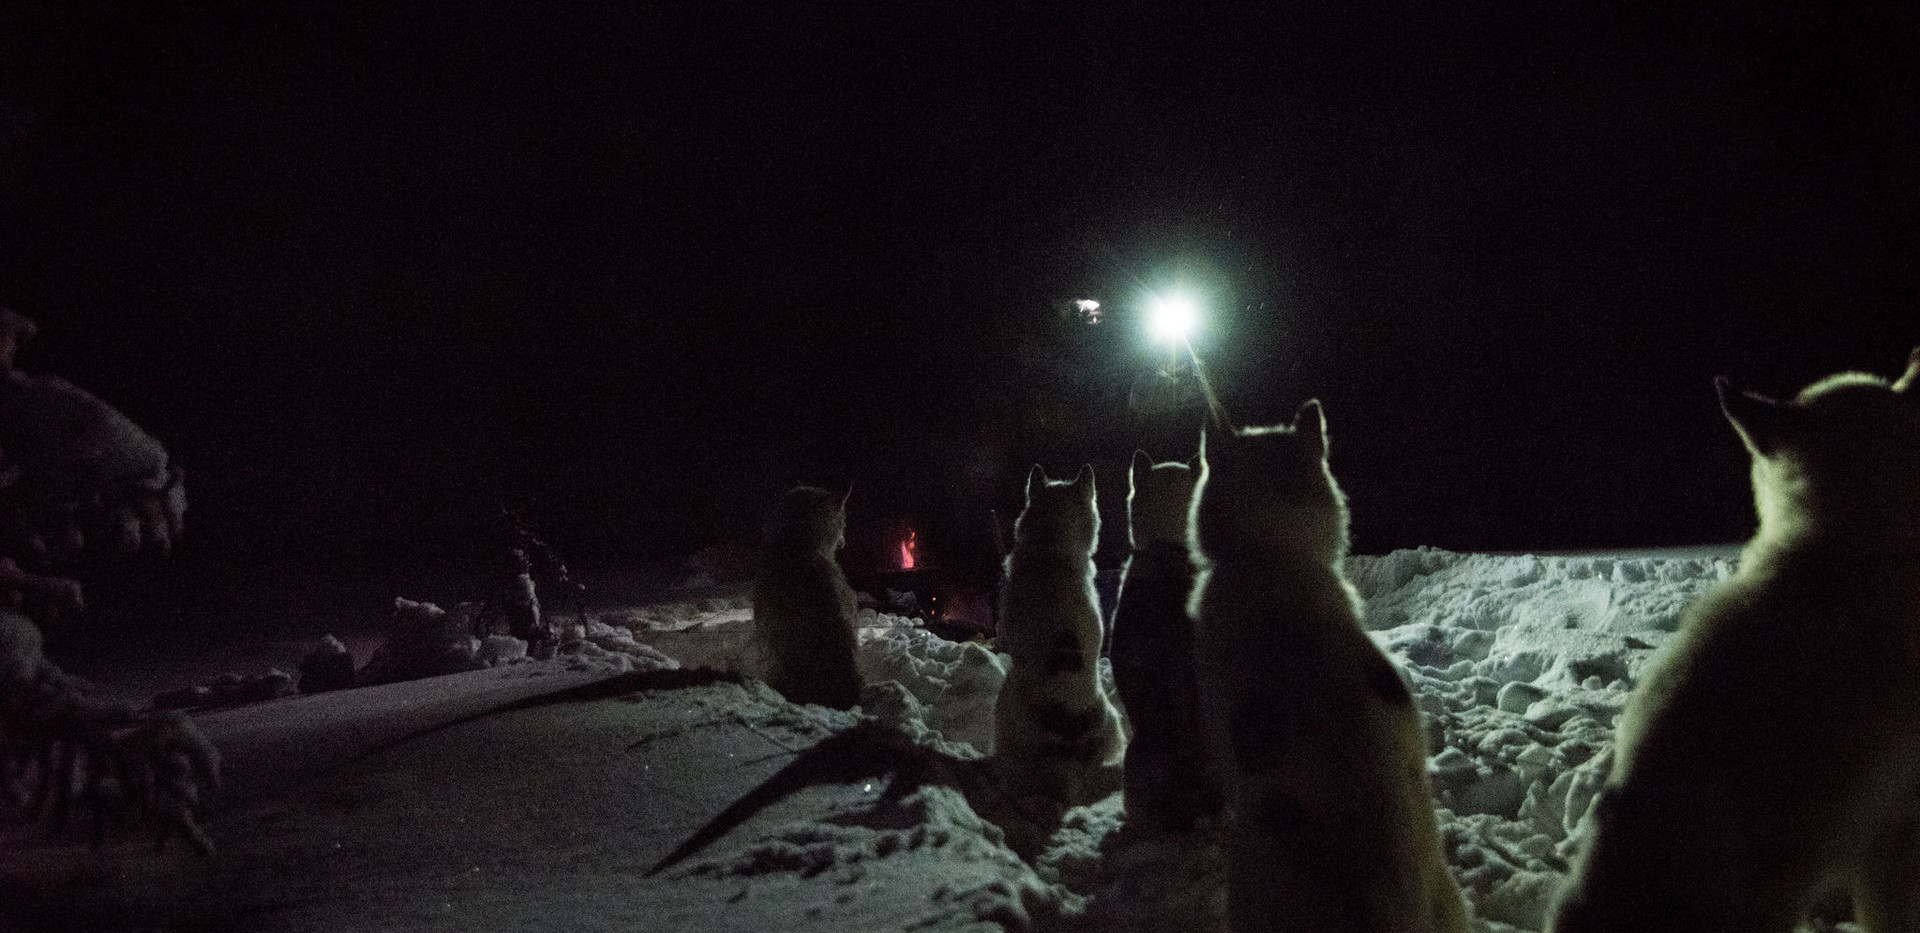 Sled dog supper is about to be served.